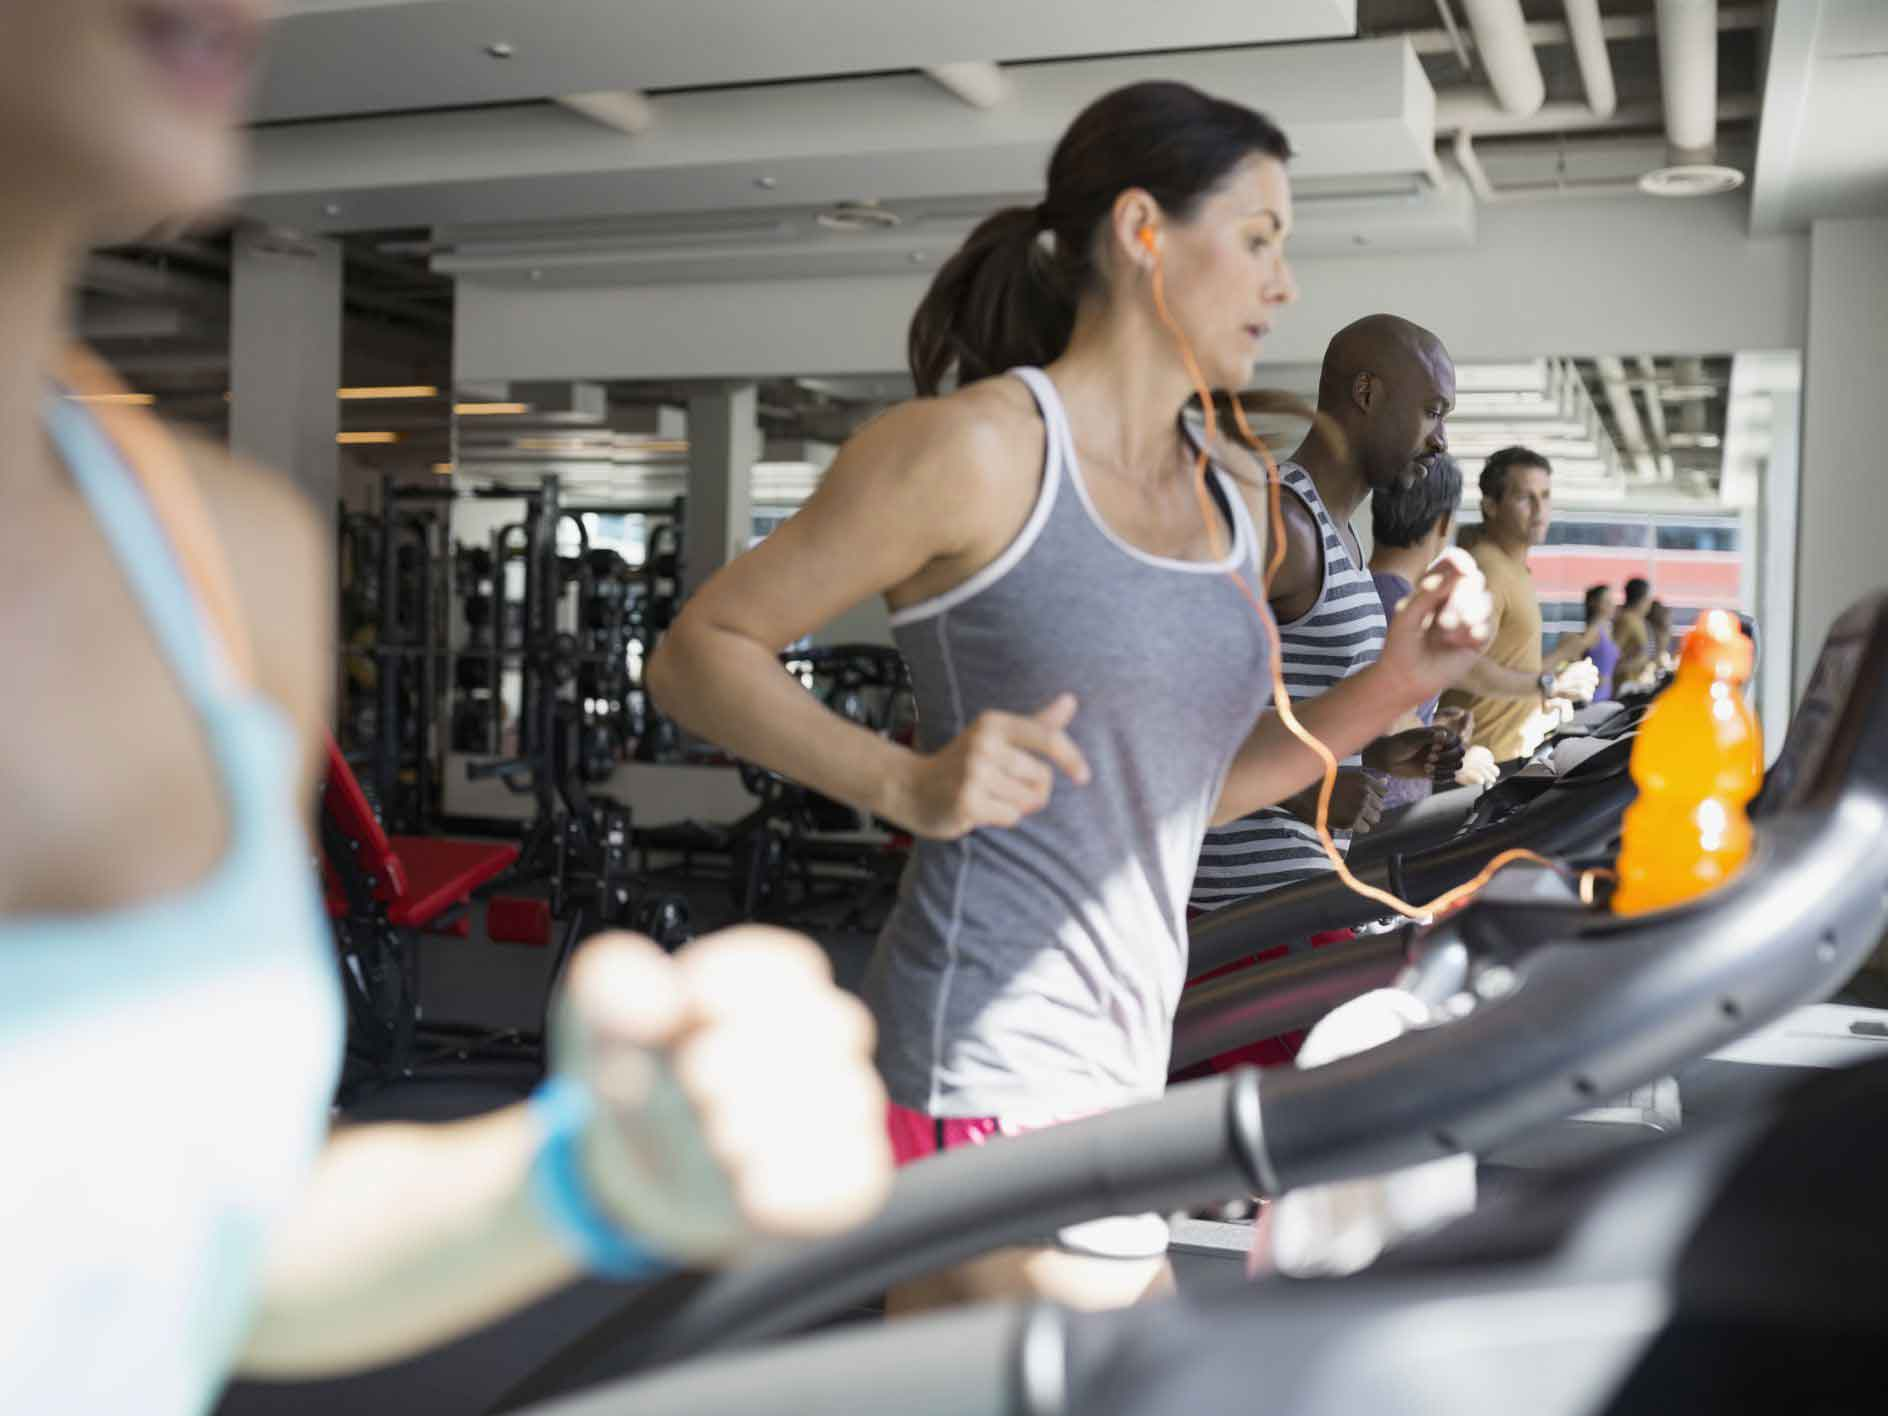 Treadmill before or after hiit 4